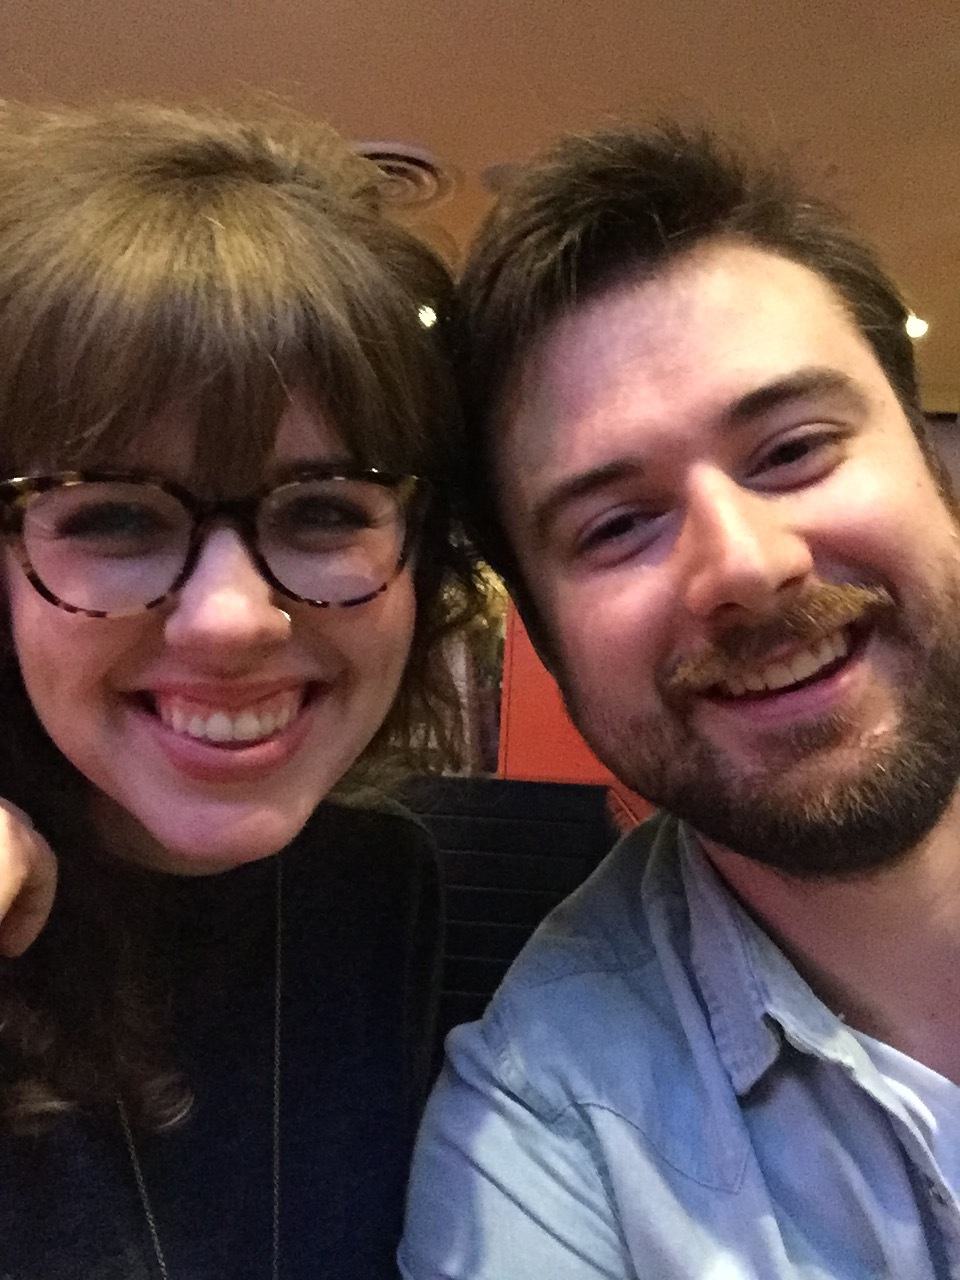 Our First Date Selfie!